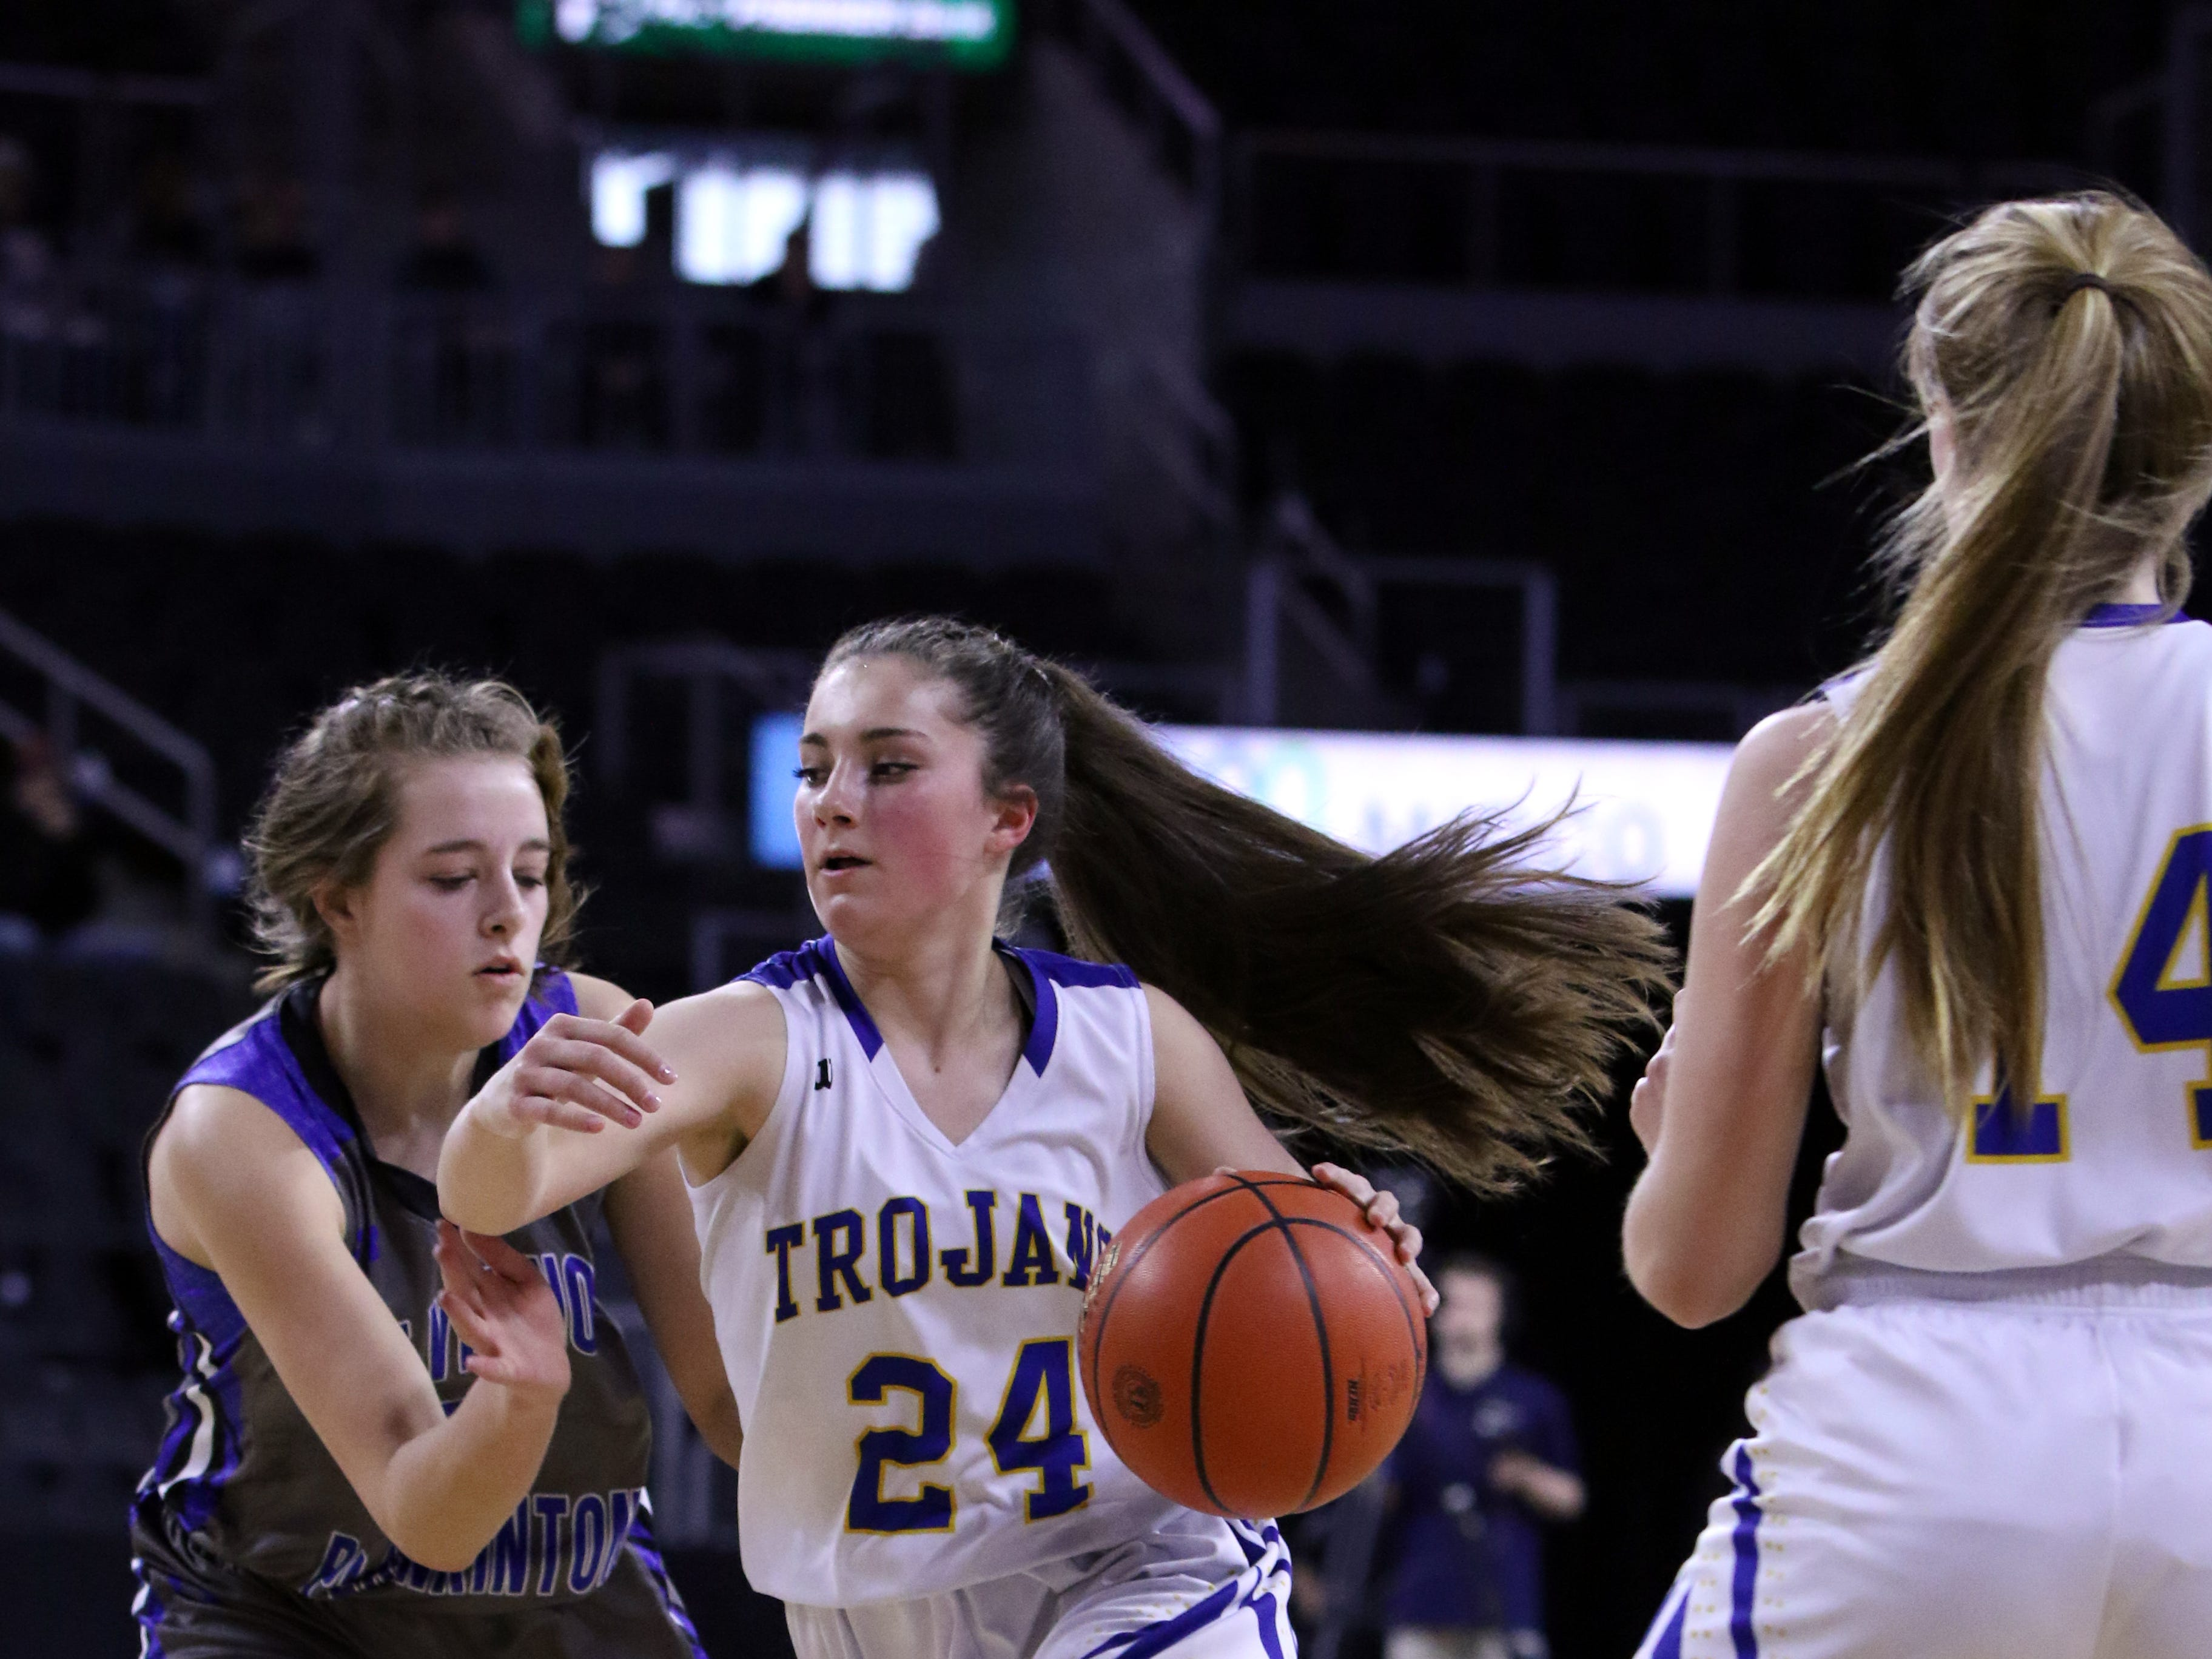 West Central's Josslin Jarding dribbles past Maria Baker of Mt Vernon-Plankinton during Thursday's game at the Premier Center in Sioux Falls.